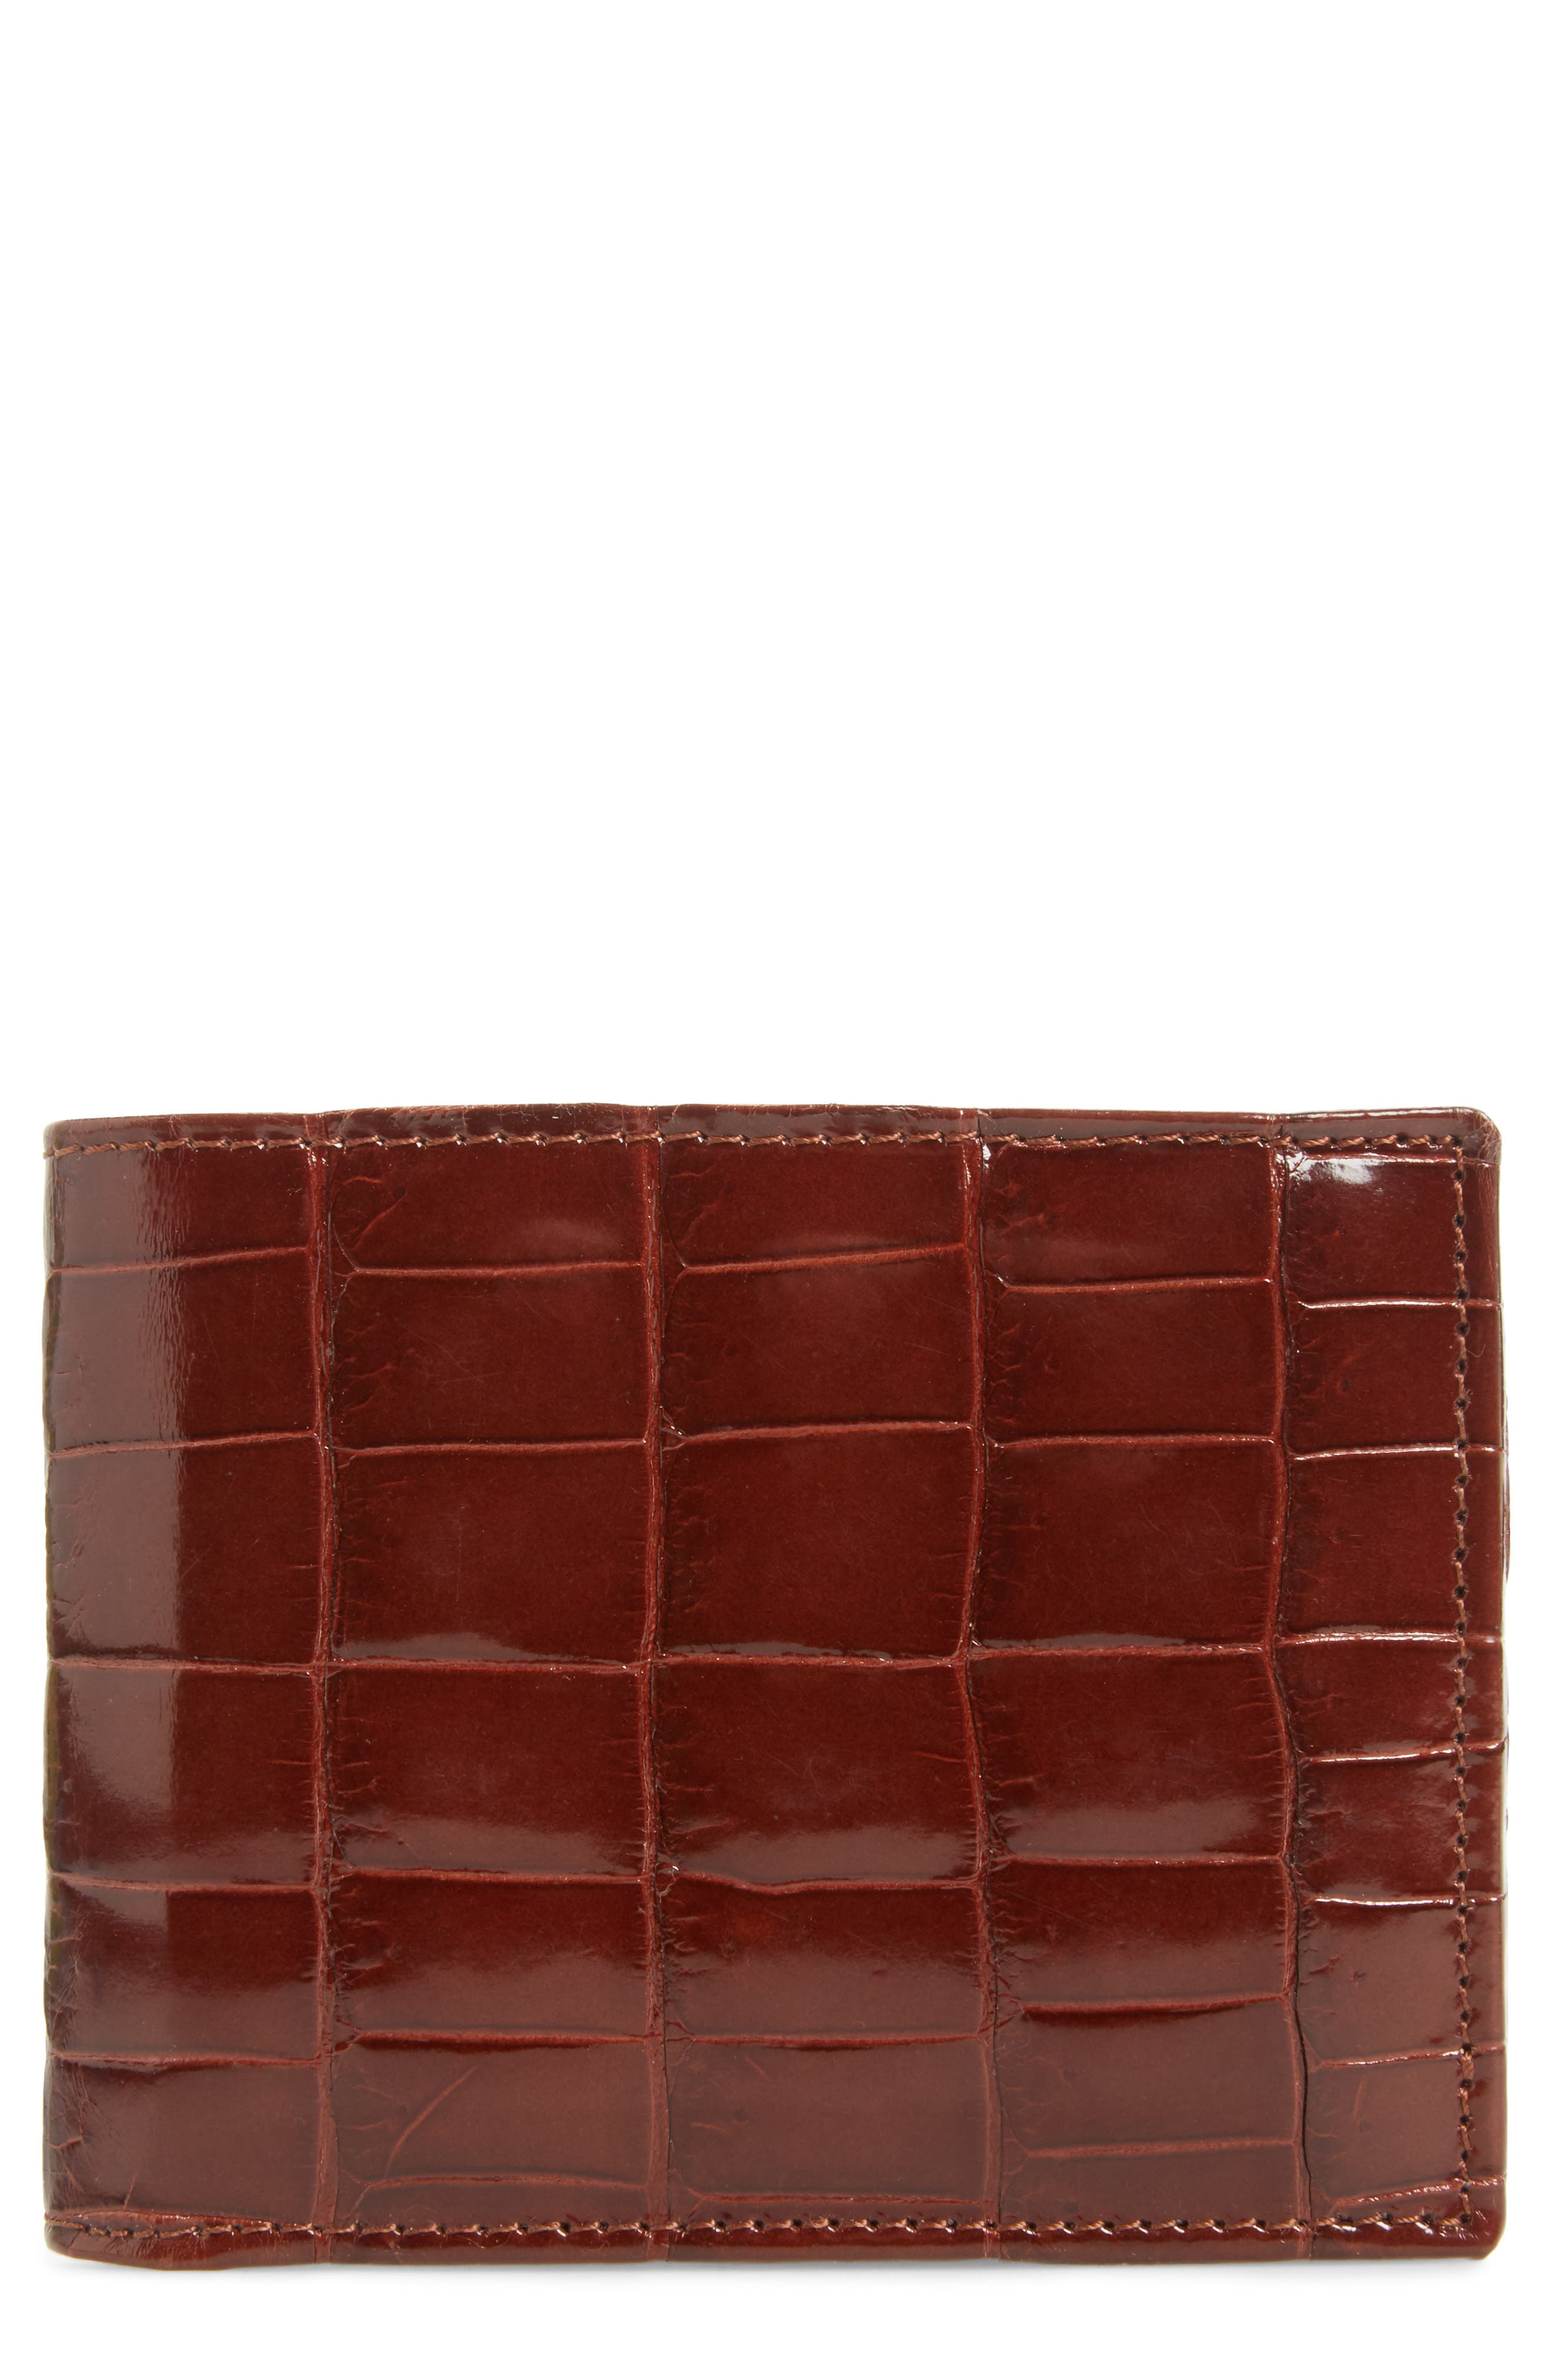 Alligator Leather Bifold Wallet,                             Main thumbnail 1, color,                             Sport